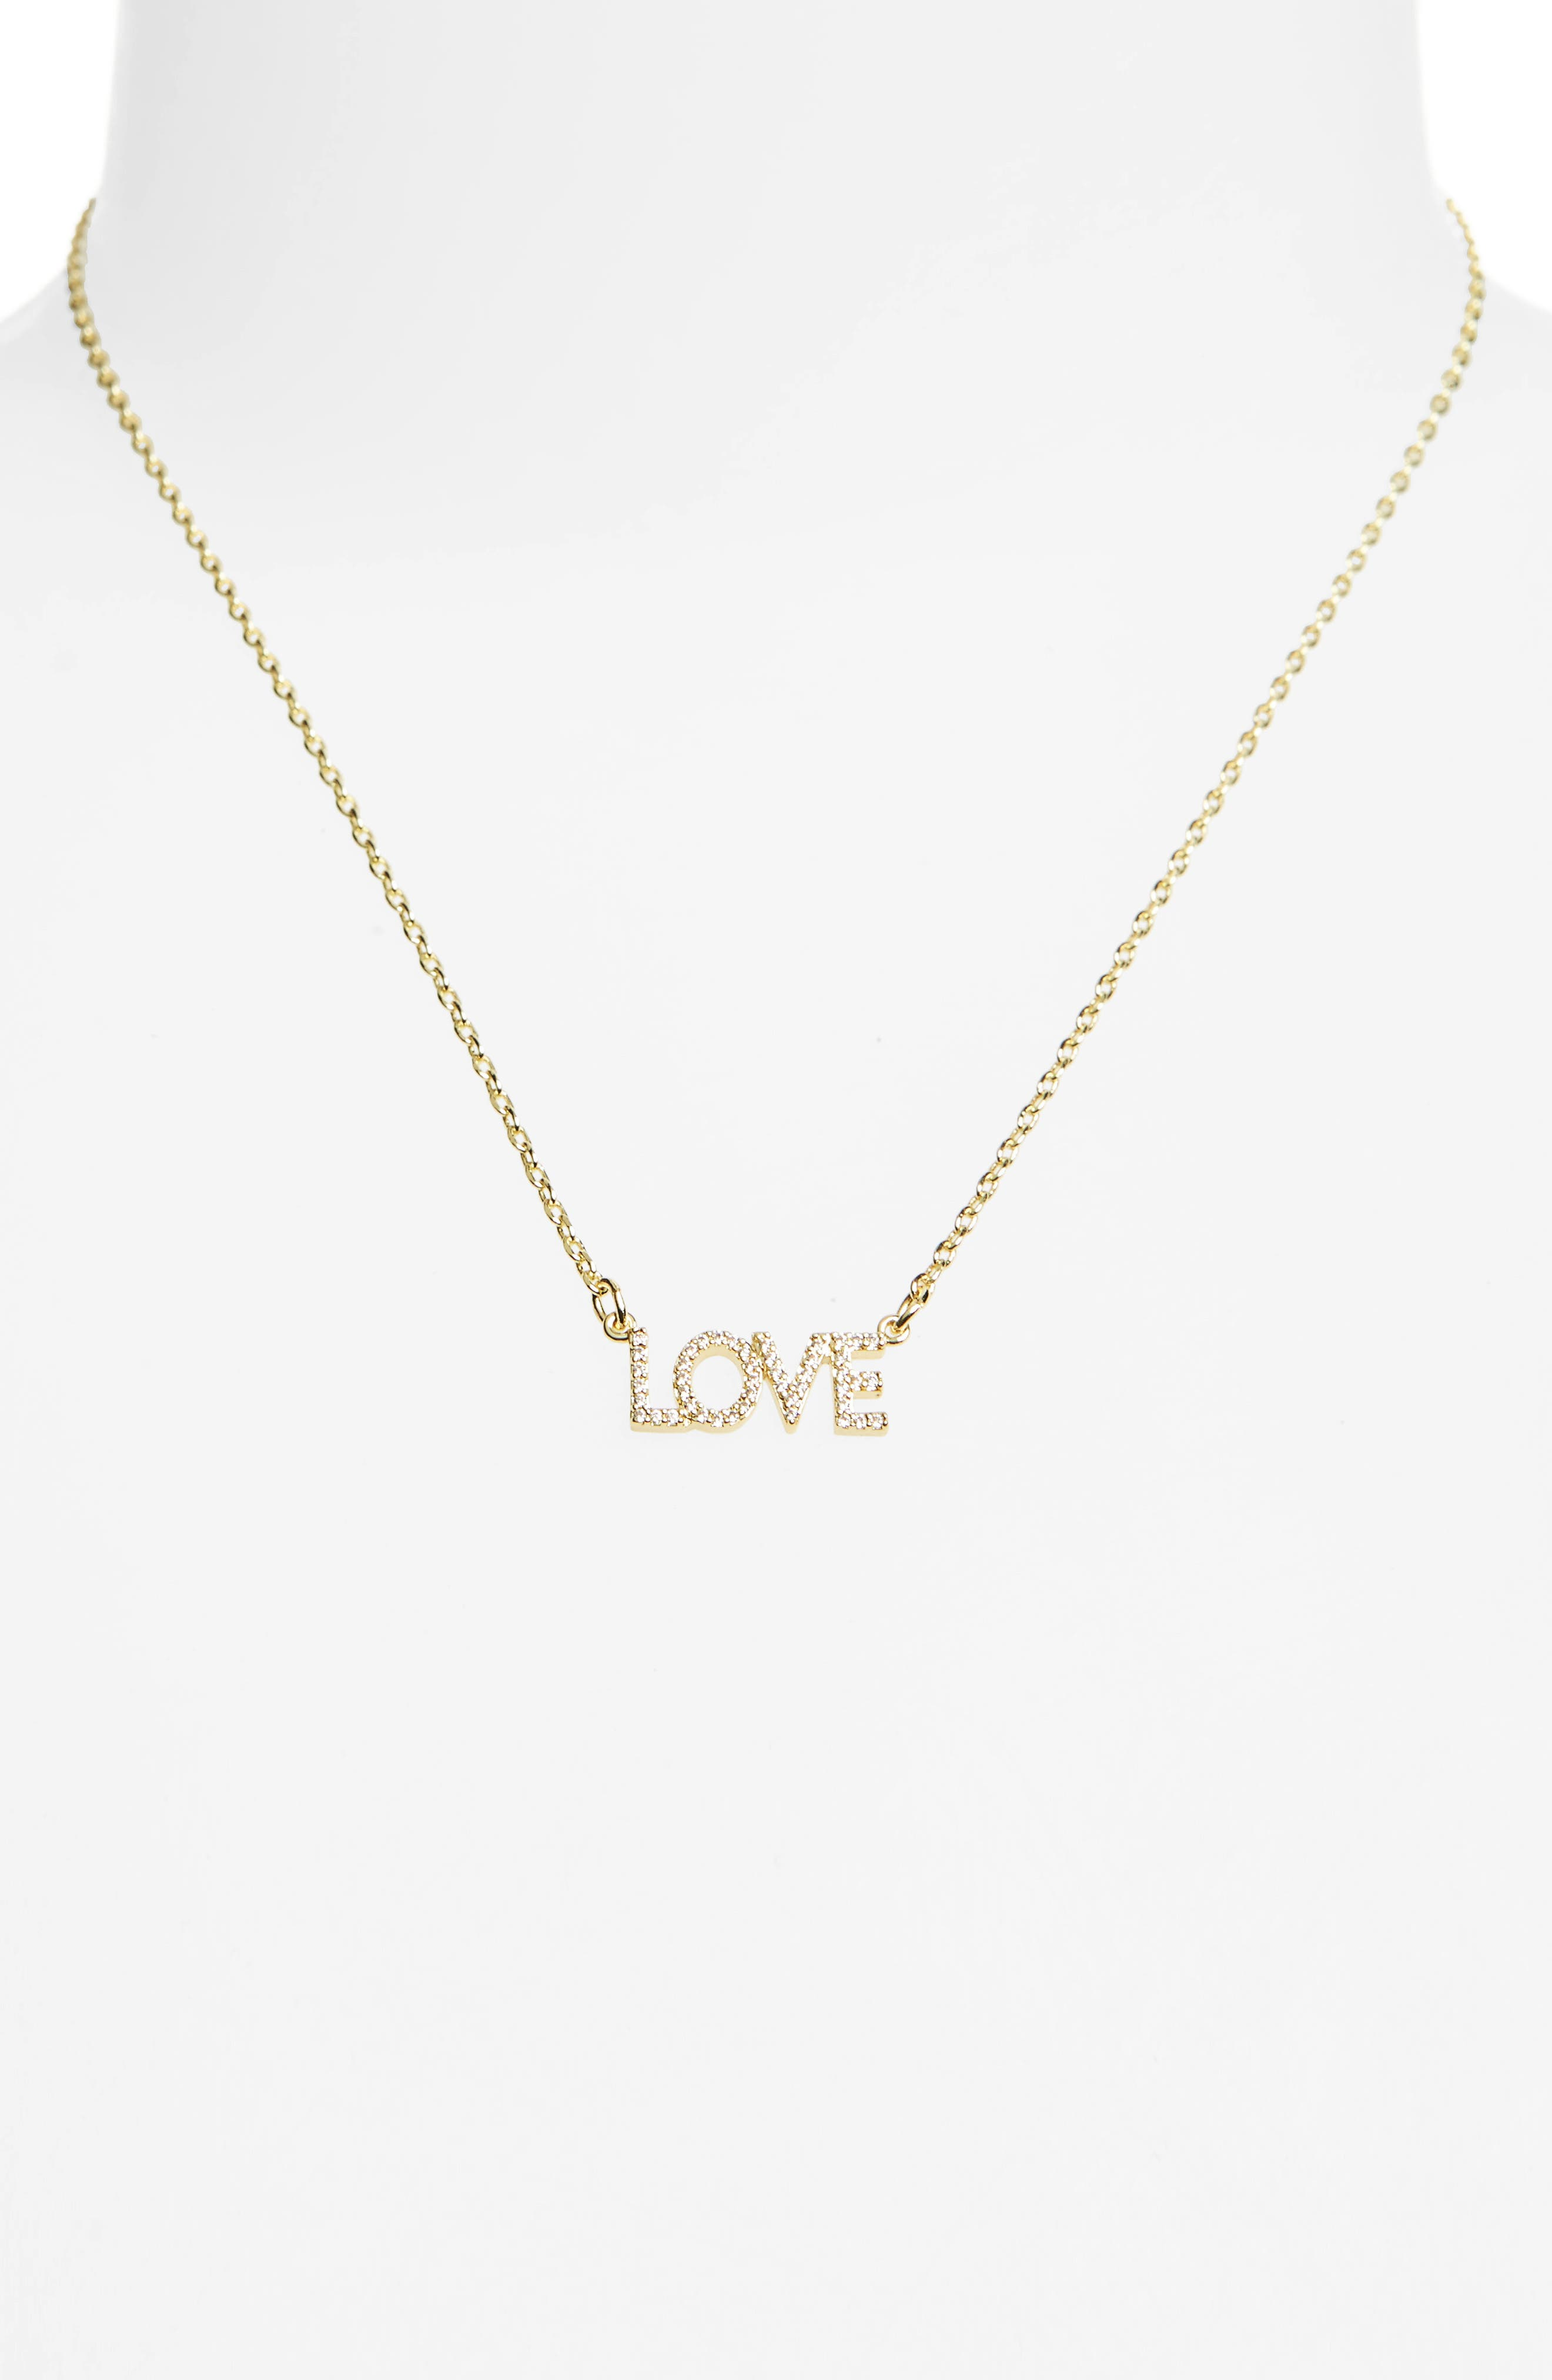 Love Necklace,                             Alternate thumbnail 2, color,                             Gold